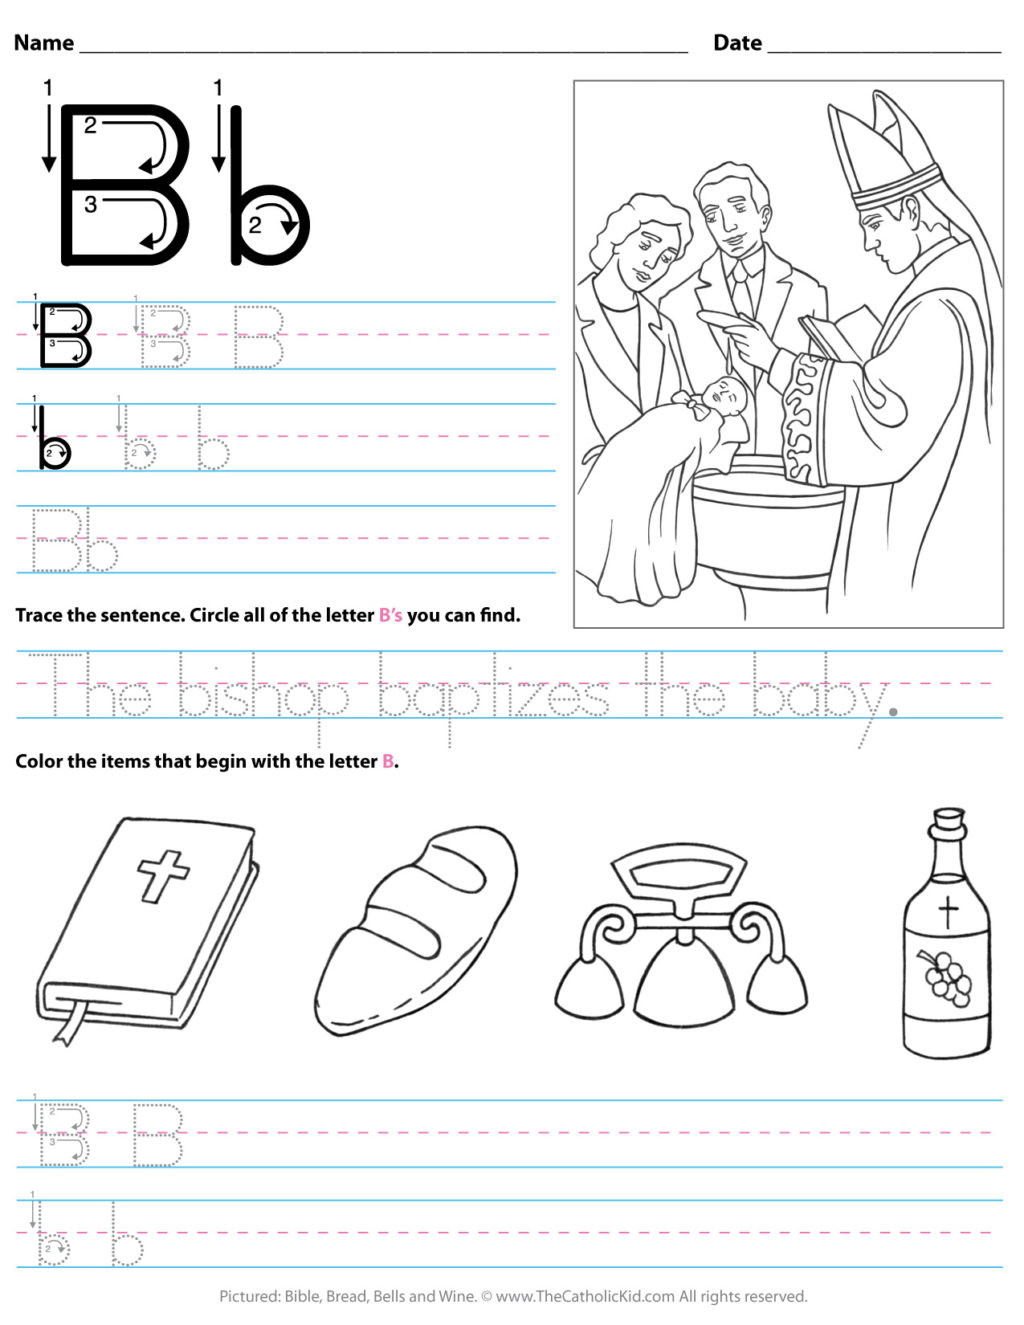 Preschool Worksheets Letter B Worksheet Amazing Free Printableksheet for Preschool